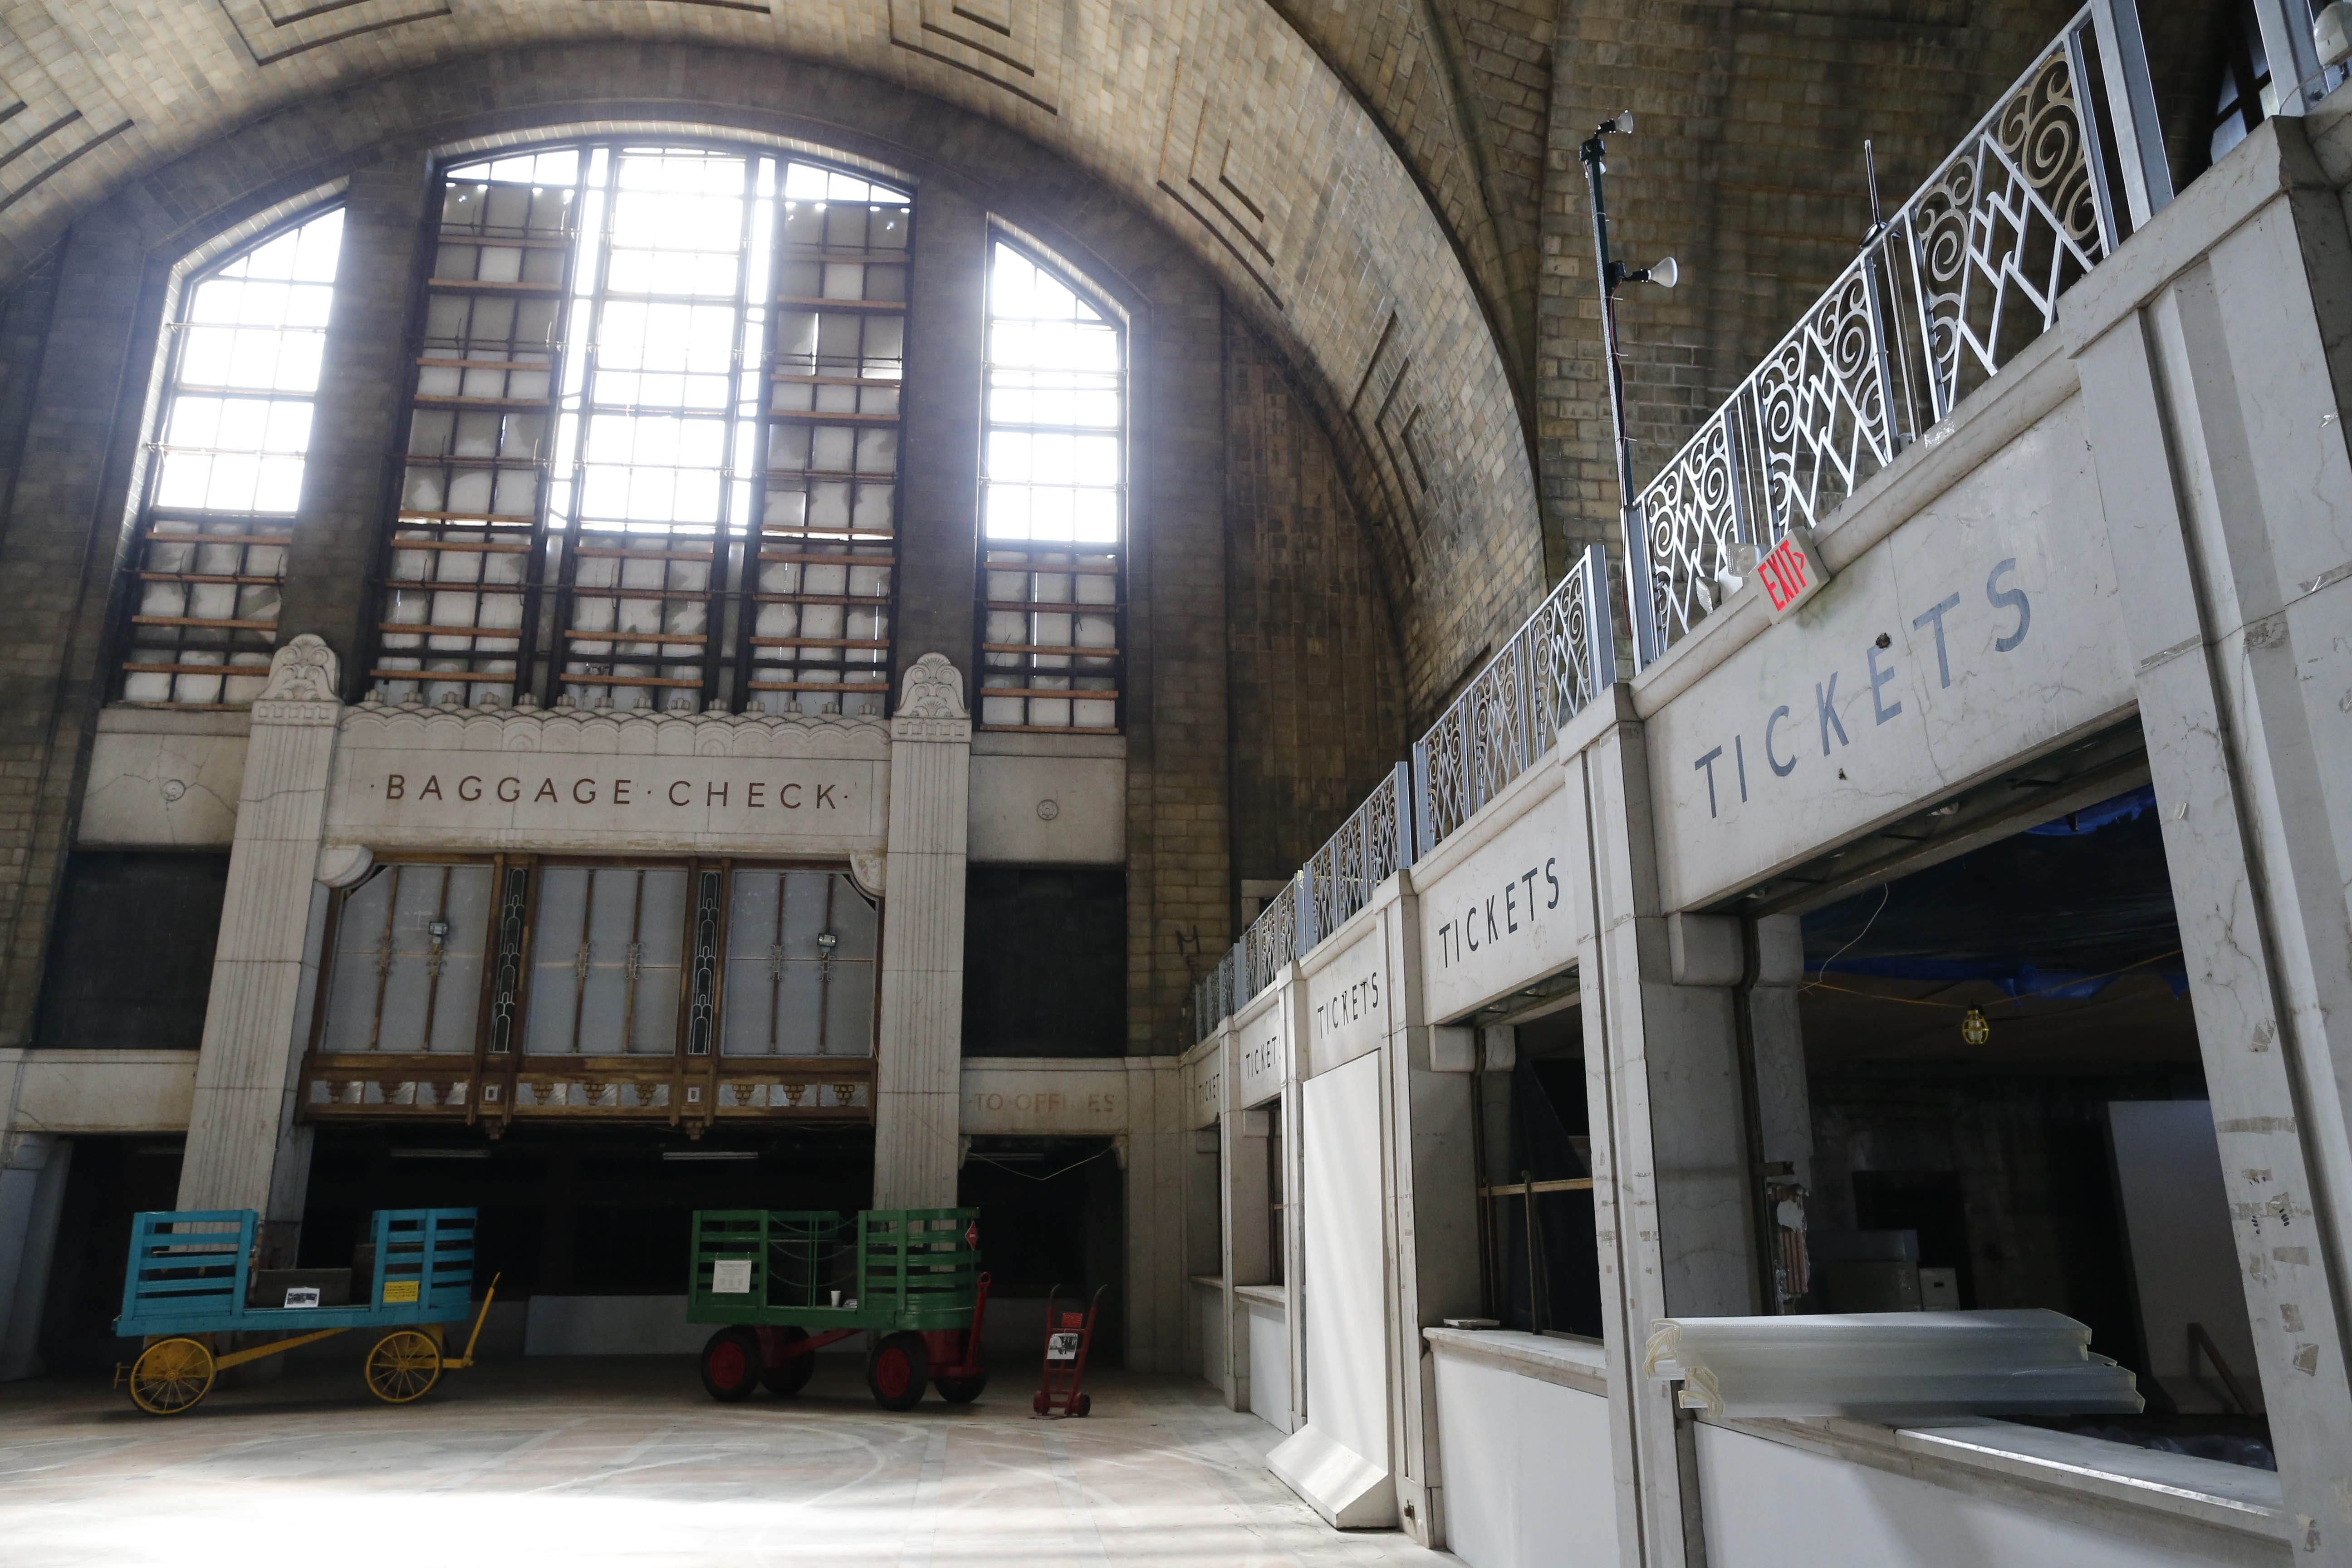 A Canadian developer has signed a six-month letter of intent to redevelop the Buffalo Central Terminal. The developer is contemplating residences in the 16-story tower building, and a mix of commercial, office, entertainment and dining in the rest of the complex.